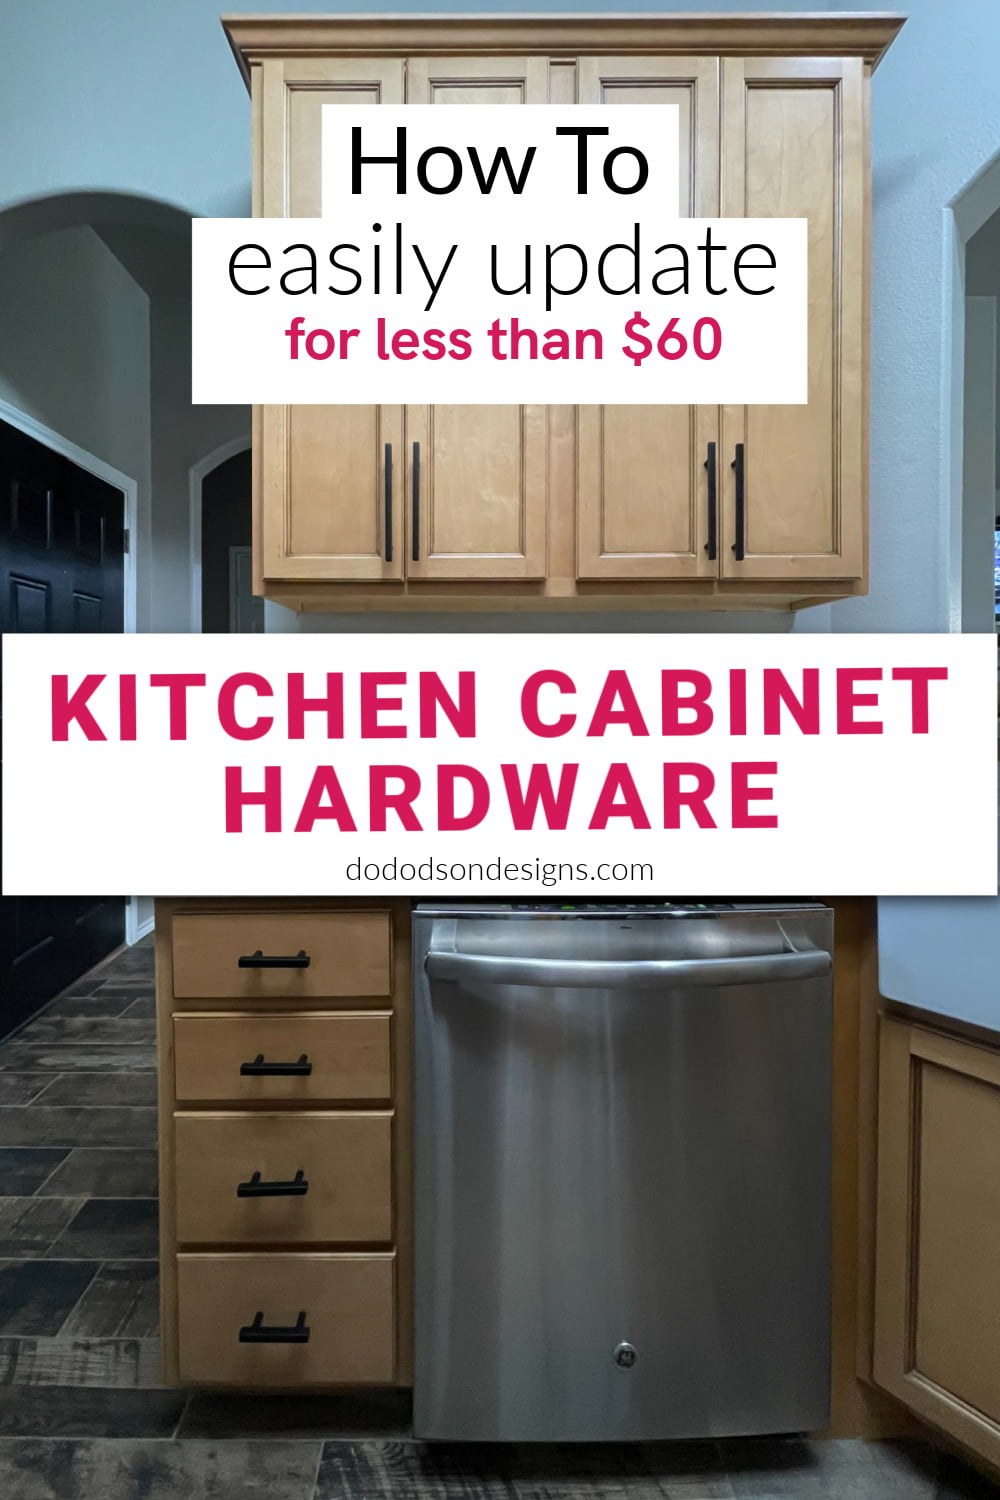 Kitchen Cabinet Hardware - How To Easily Update For Less Than $60